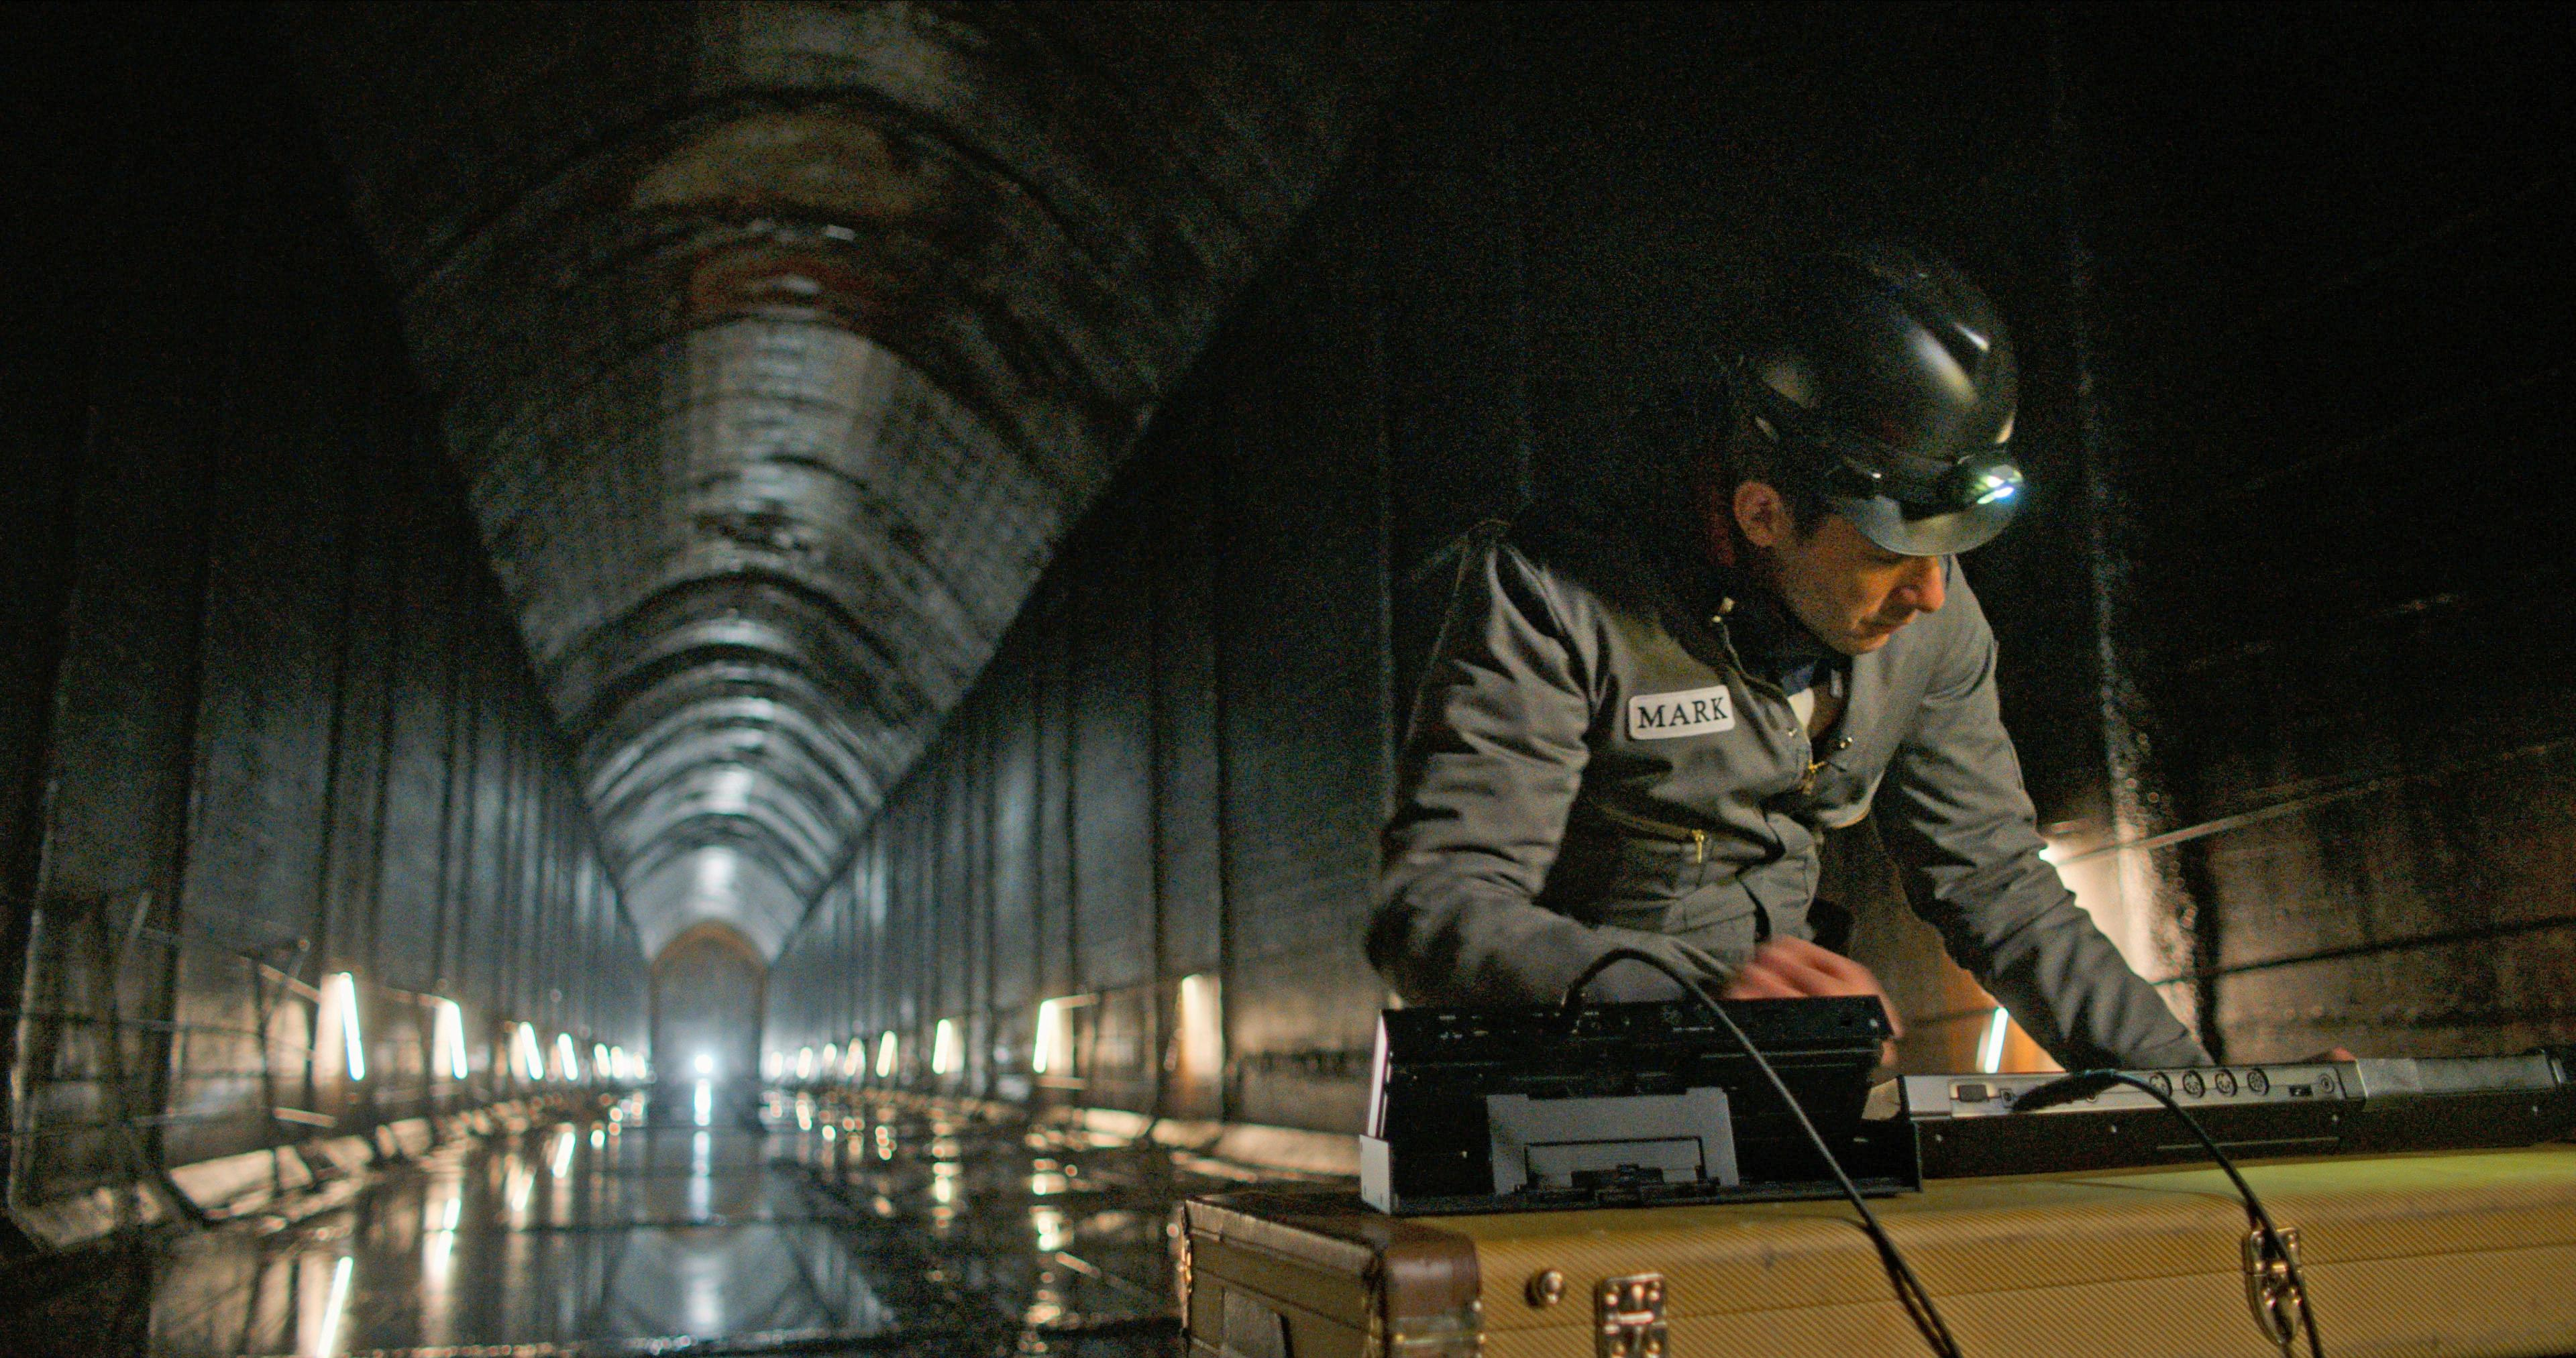 Watch the Sound TV show advertised with this image of Mark Ronson making music in a tunnel.